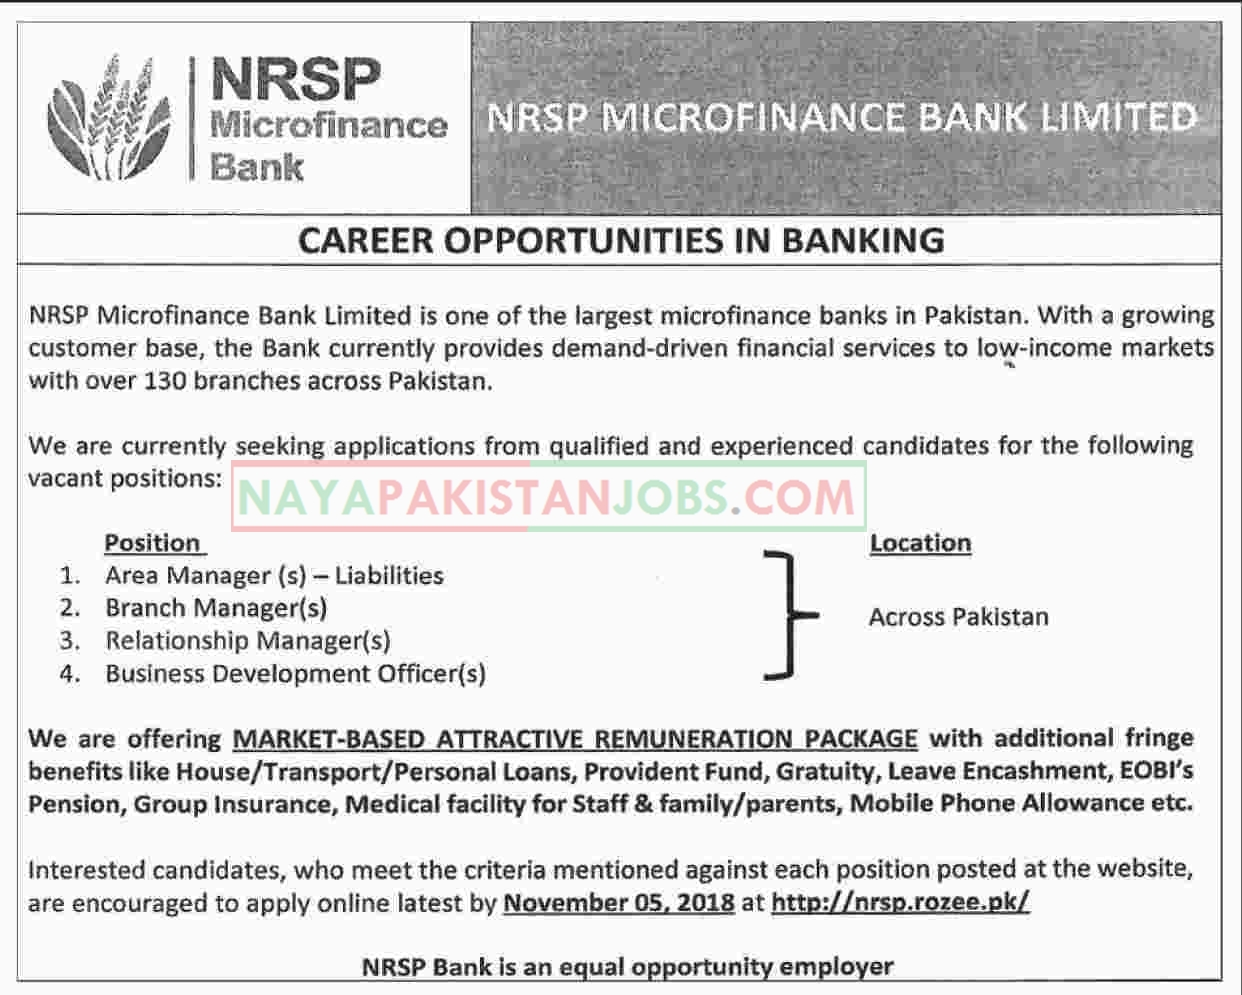 Latest Vacancies Announced in NRSP Microfinance Bank Limited 29 October 2018 - Naya Pakistan